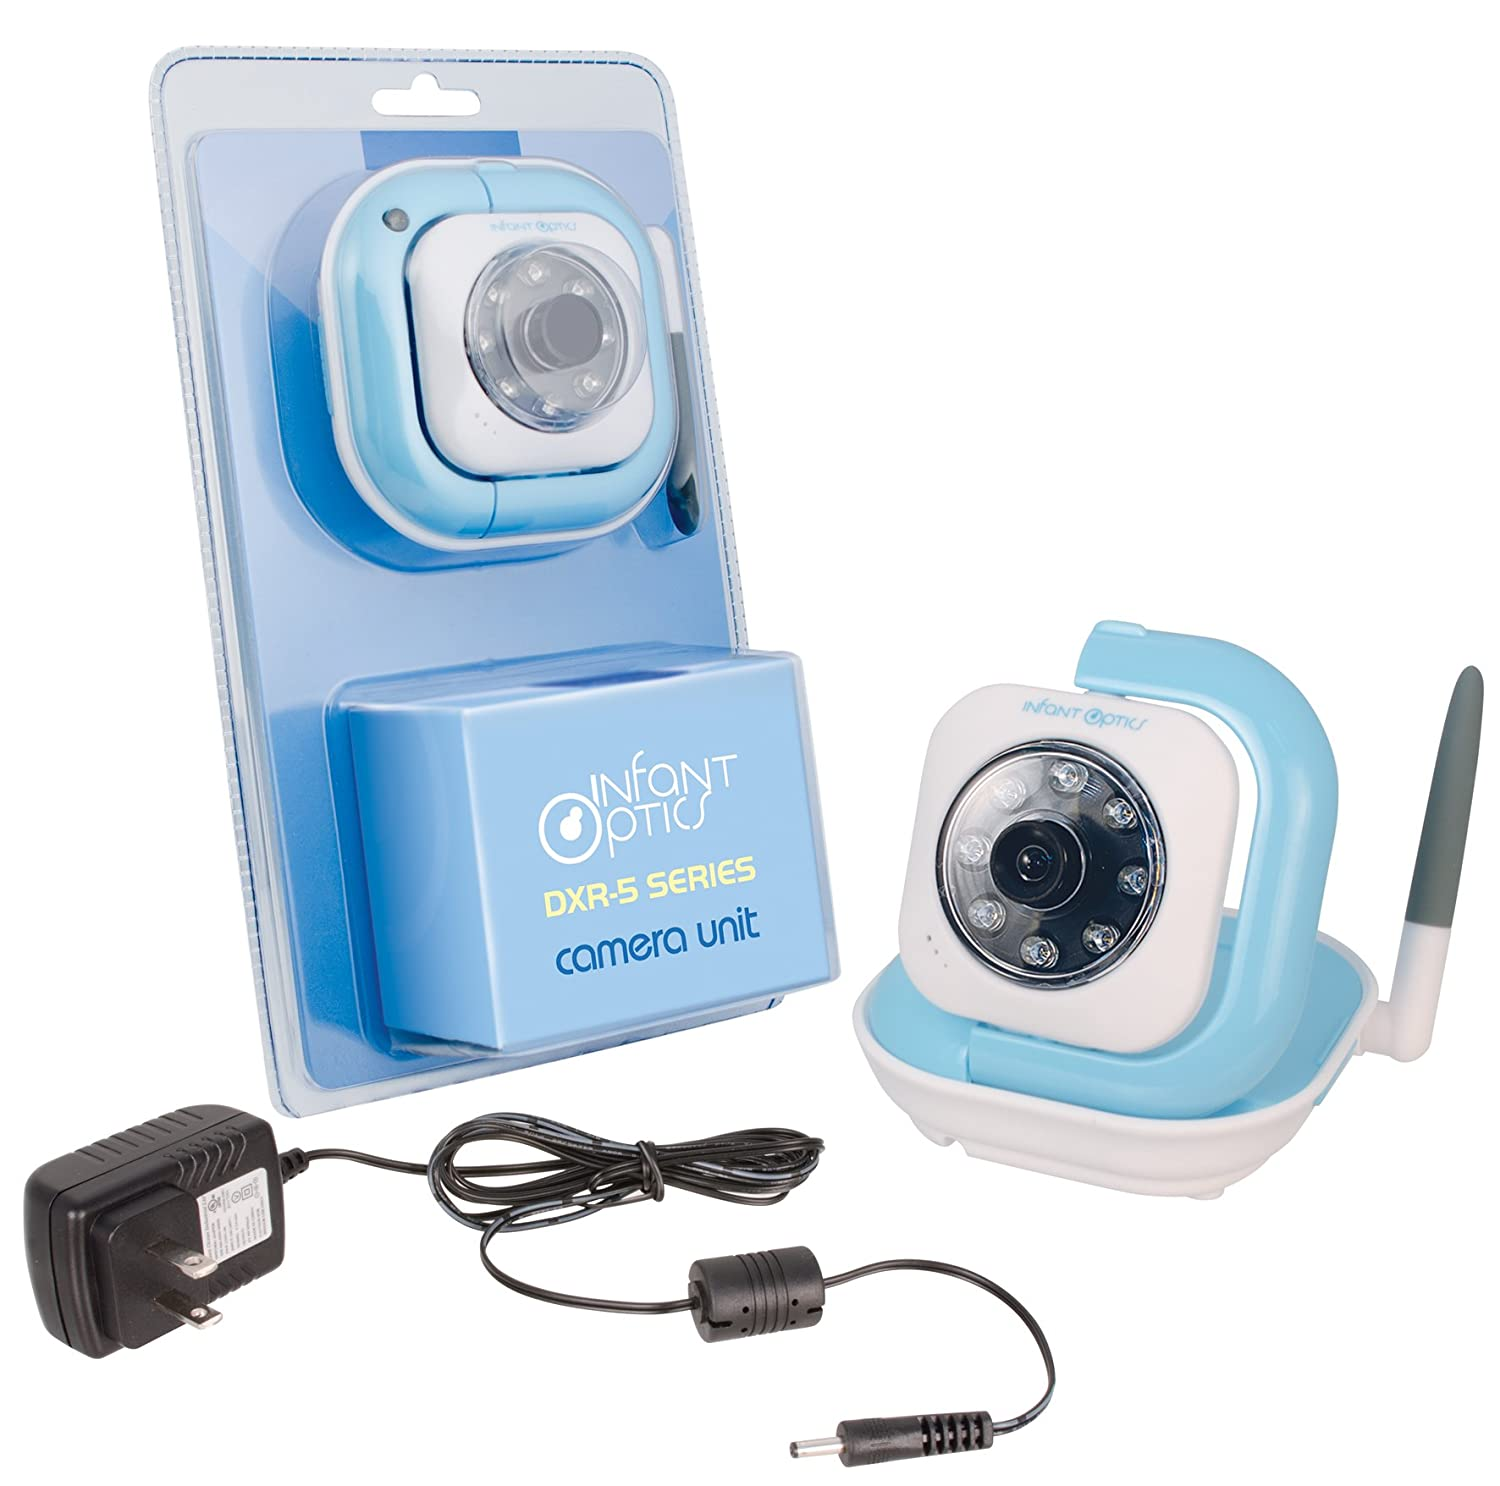 Infant Optics Add-On Camera for DXR-5 2.4 Ghz Video